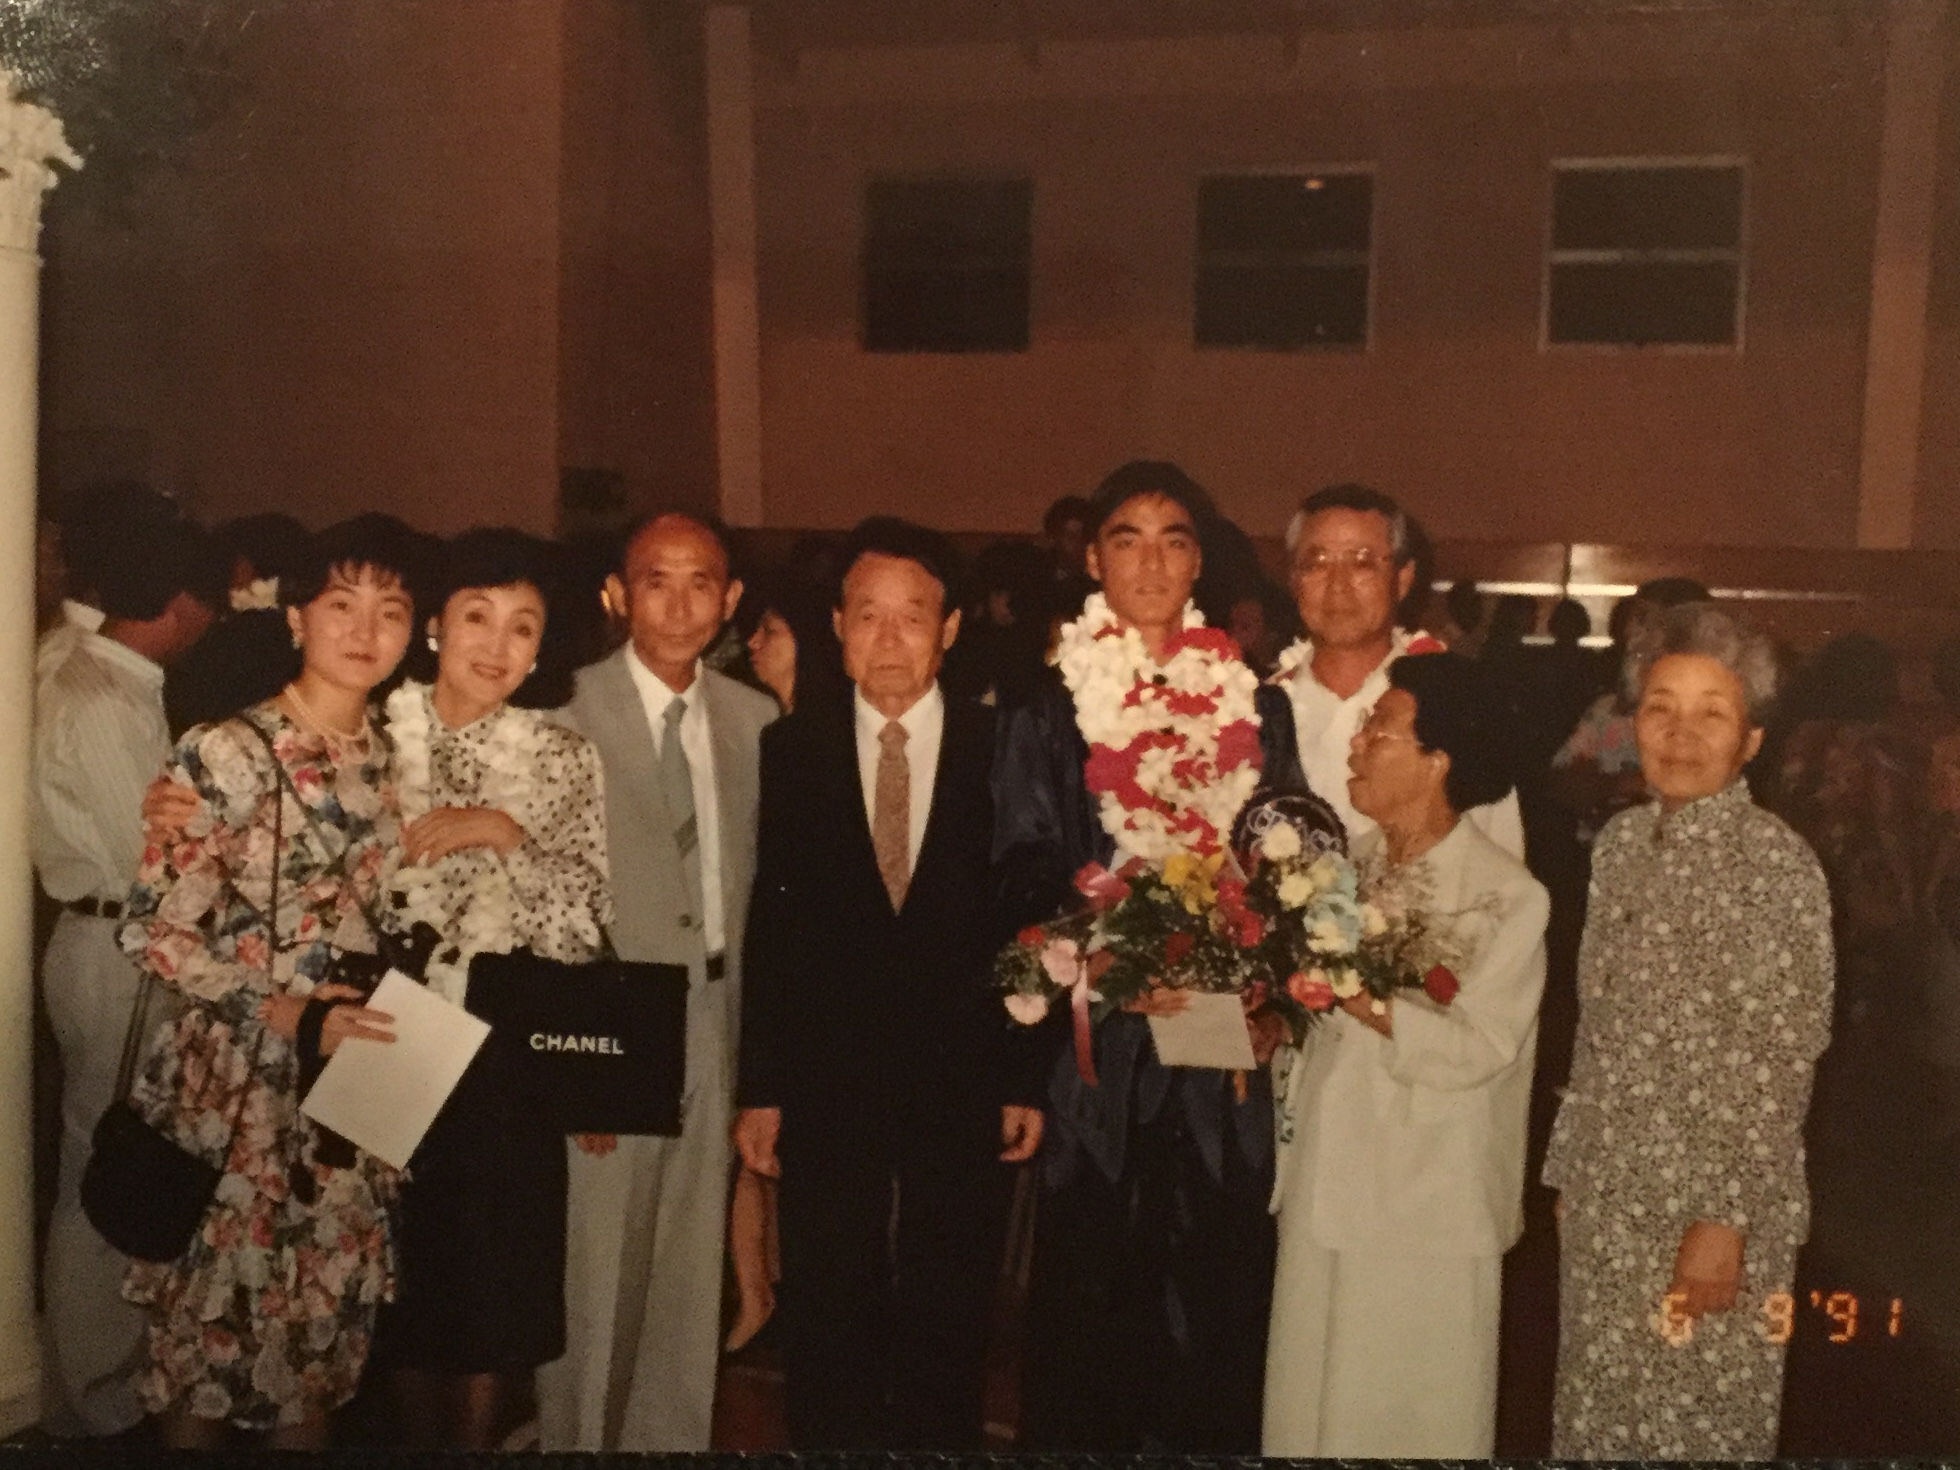 Family and education were the top priorities of the Kim Family. Both sets of grandparents traveled to Guam for Yeong-Sae Kim's graduation from St. John's School in 1991.